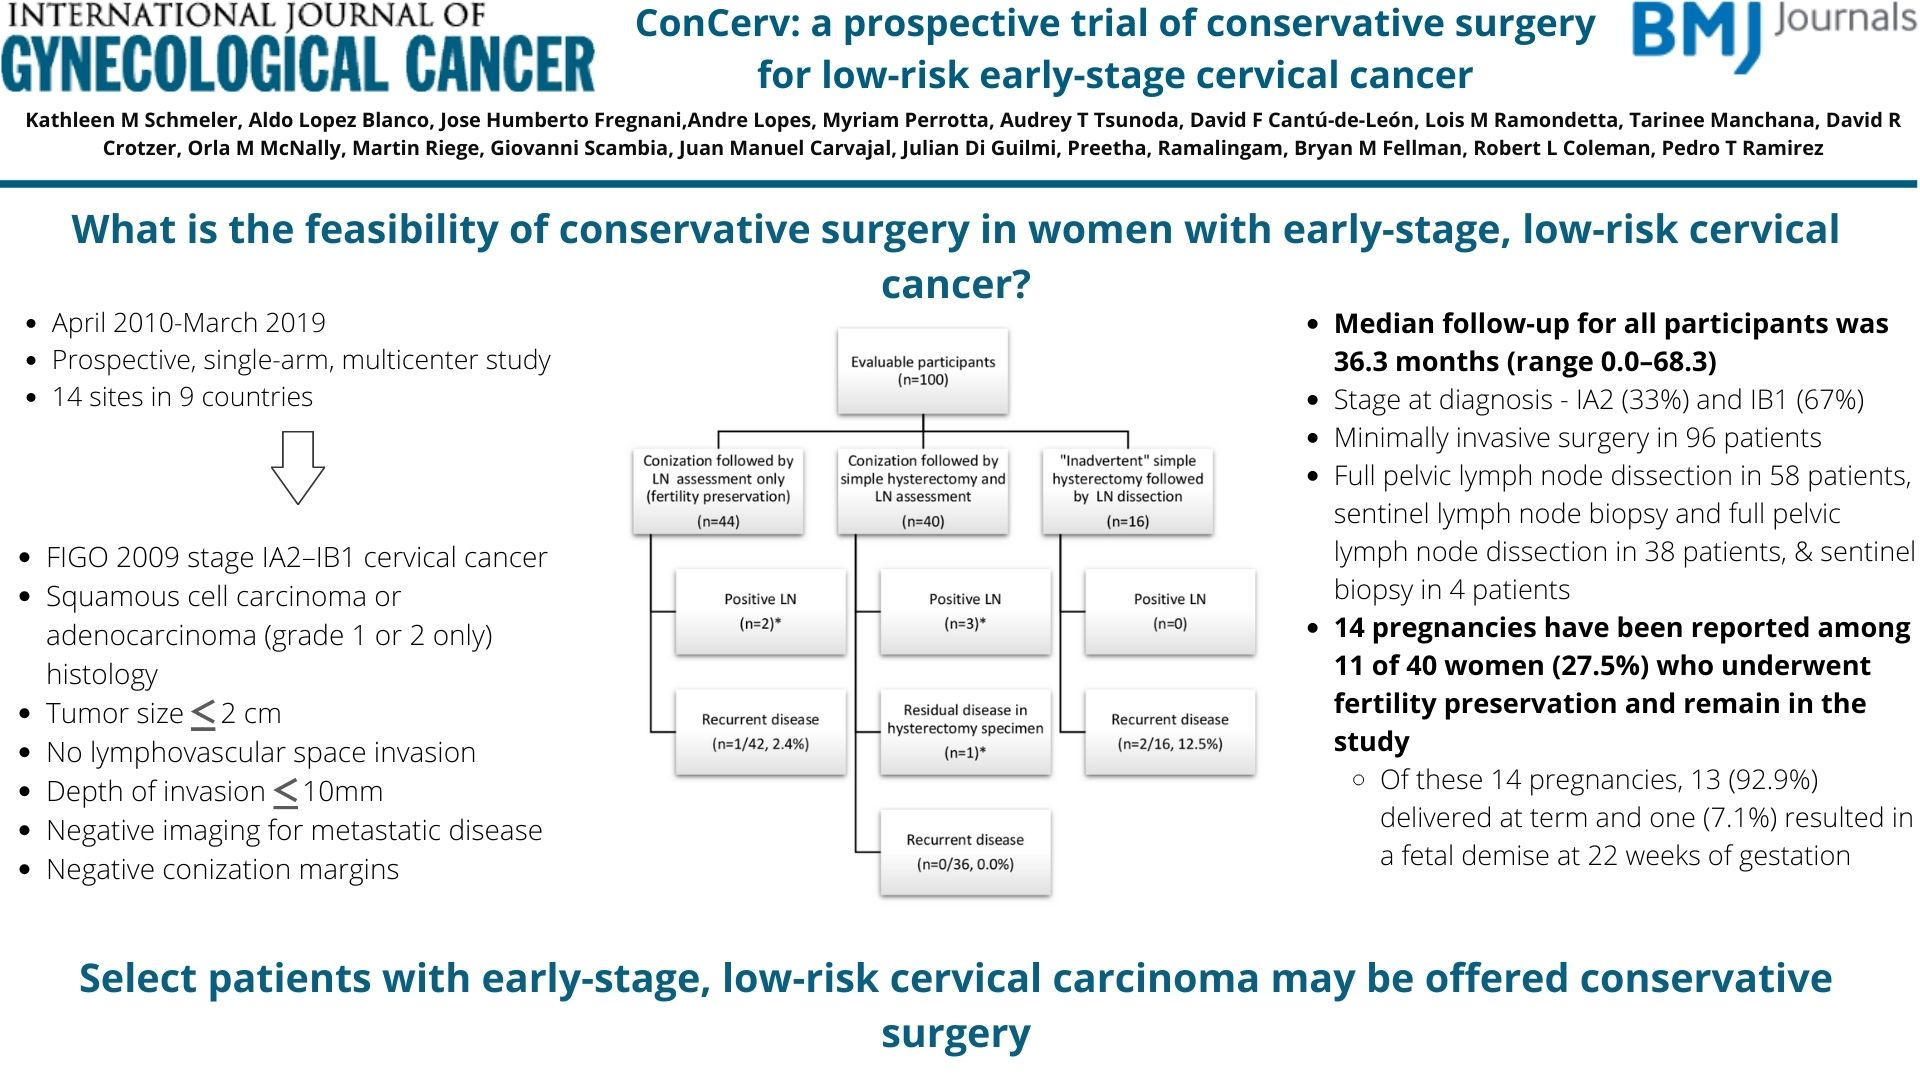 ConCerv: A prospective trial of conservative surgery for low-risk early-stage cervical cancer